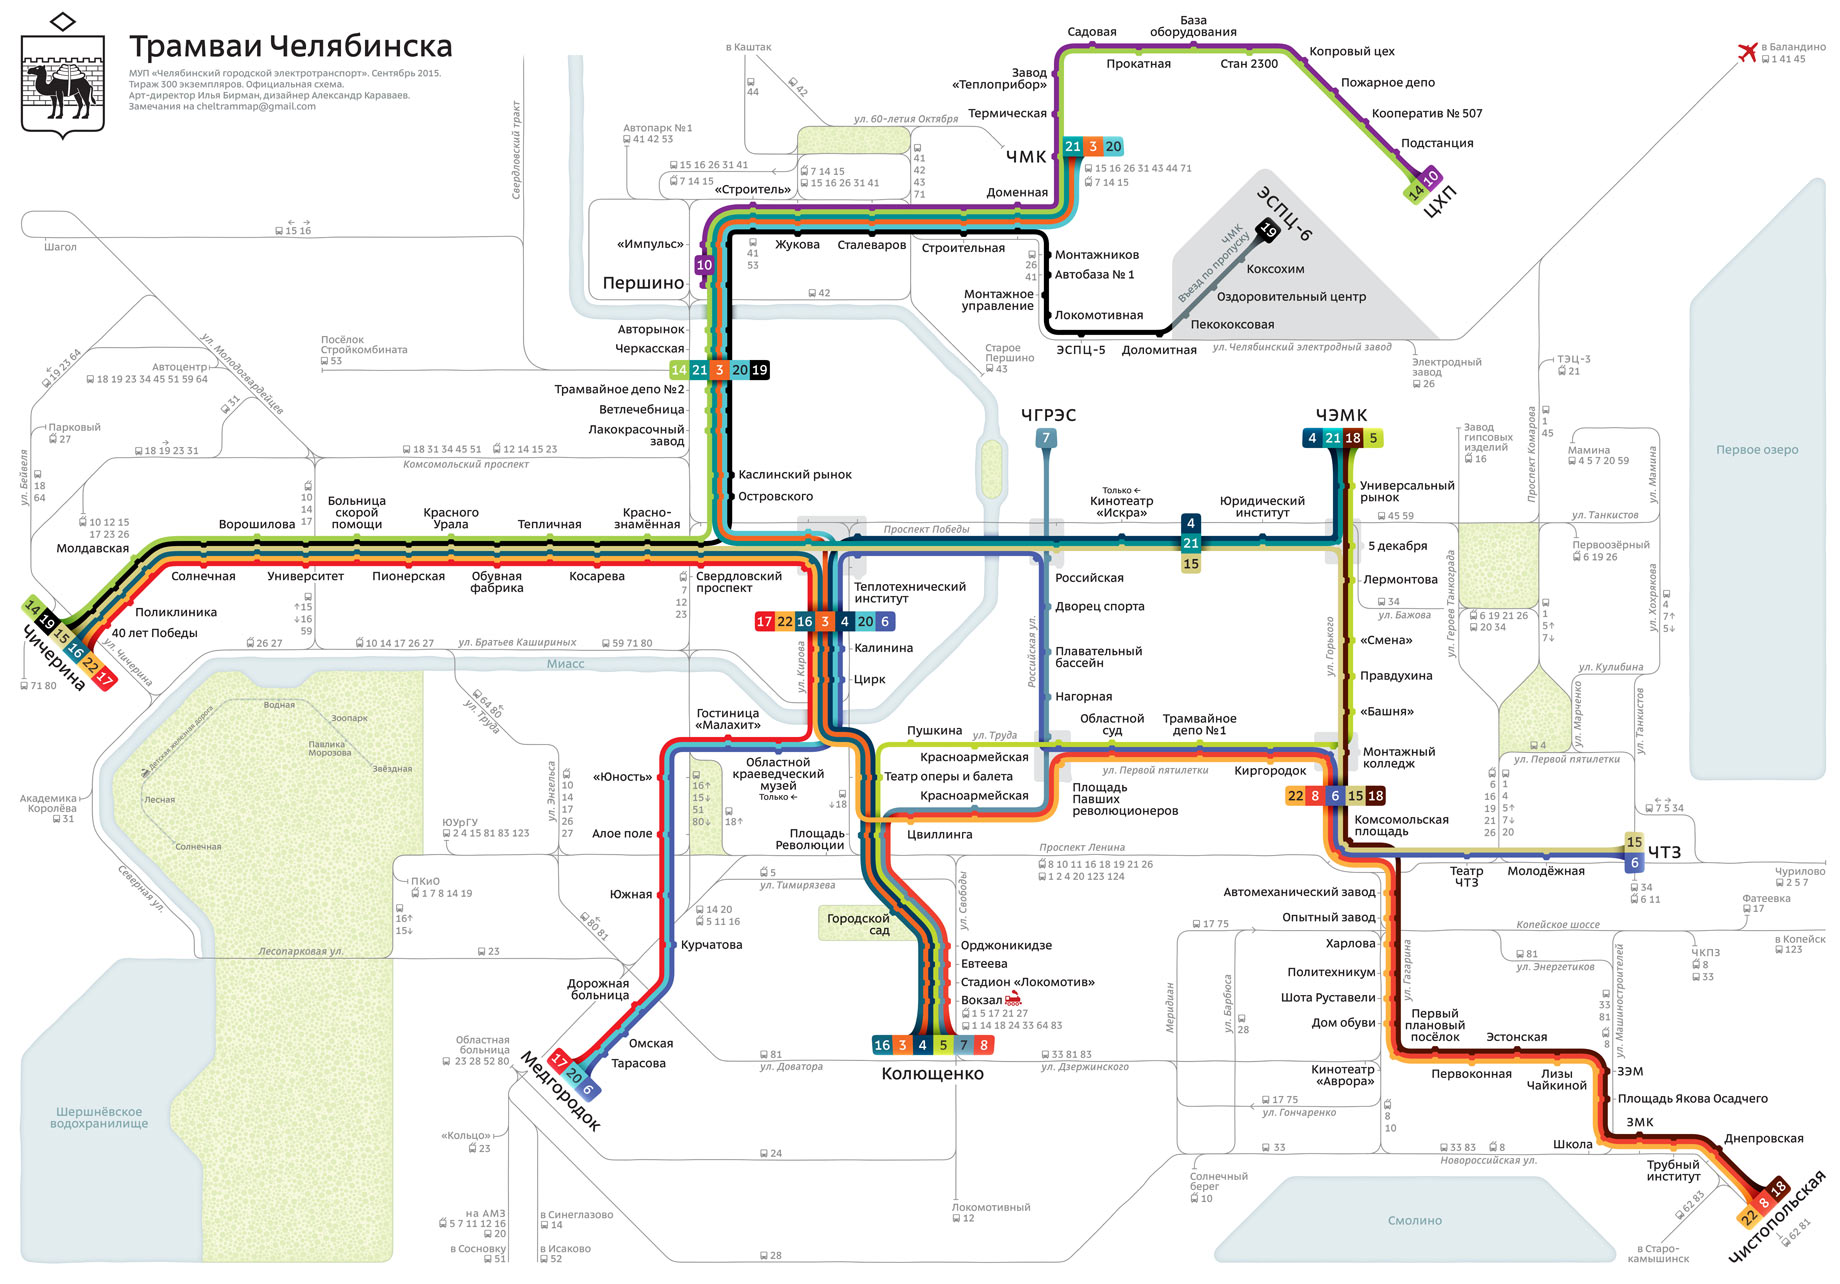 New official Chelyabinsk trams diagram